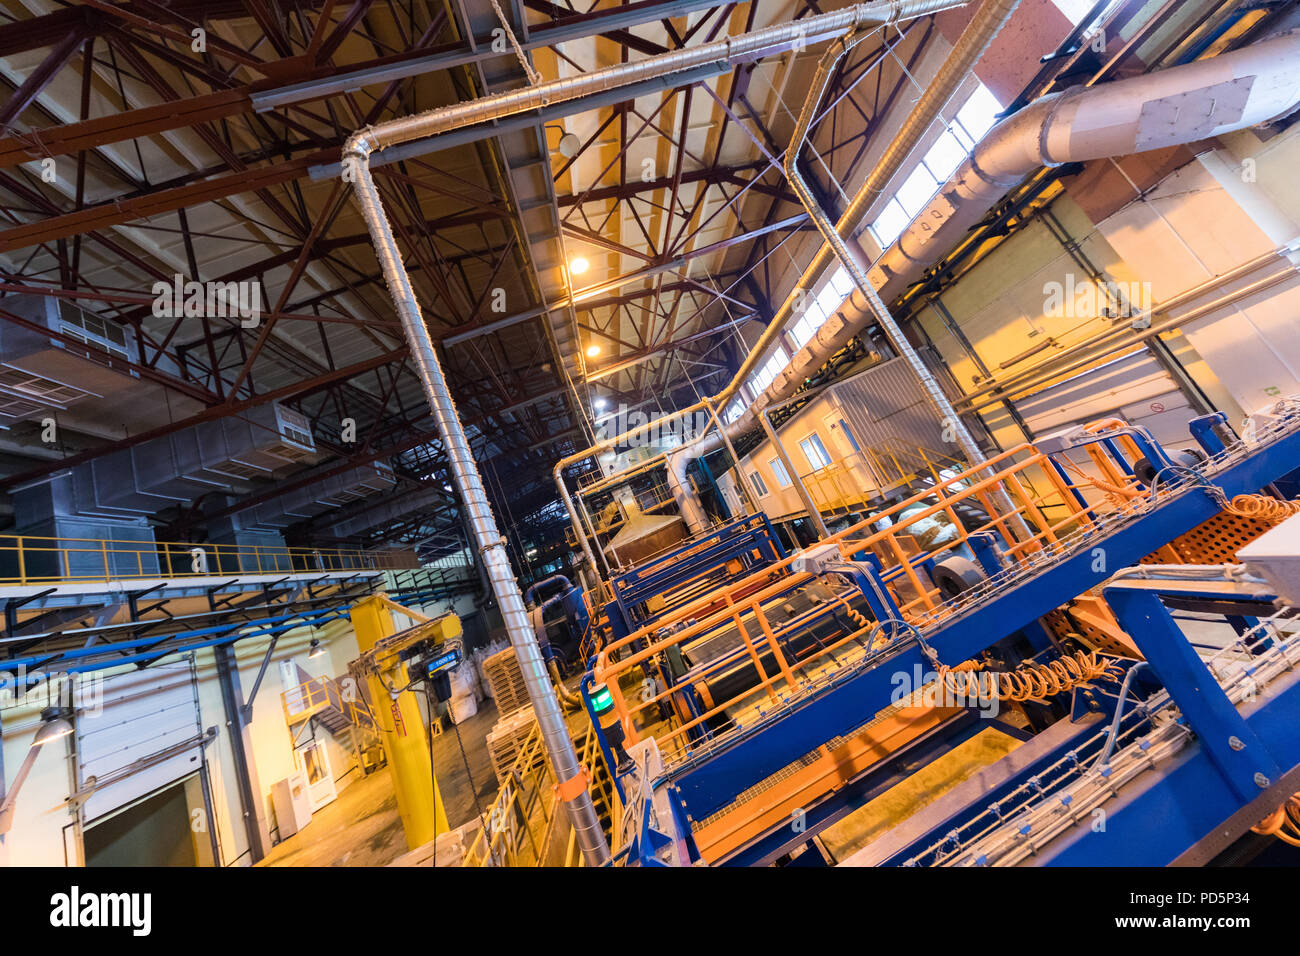 Manufacturing factory, wide-focus lens - Stock Image